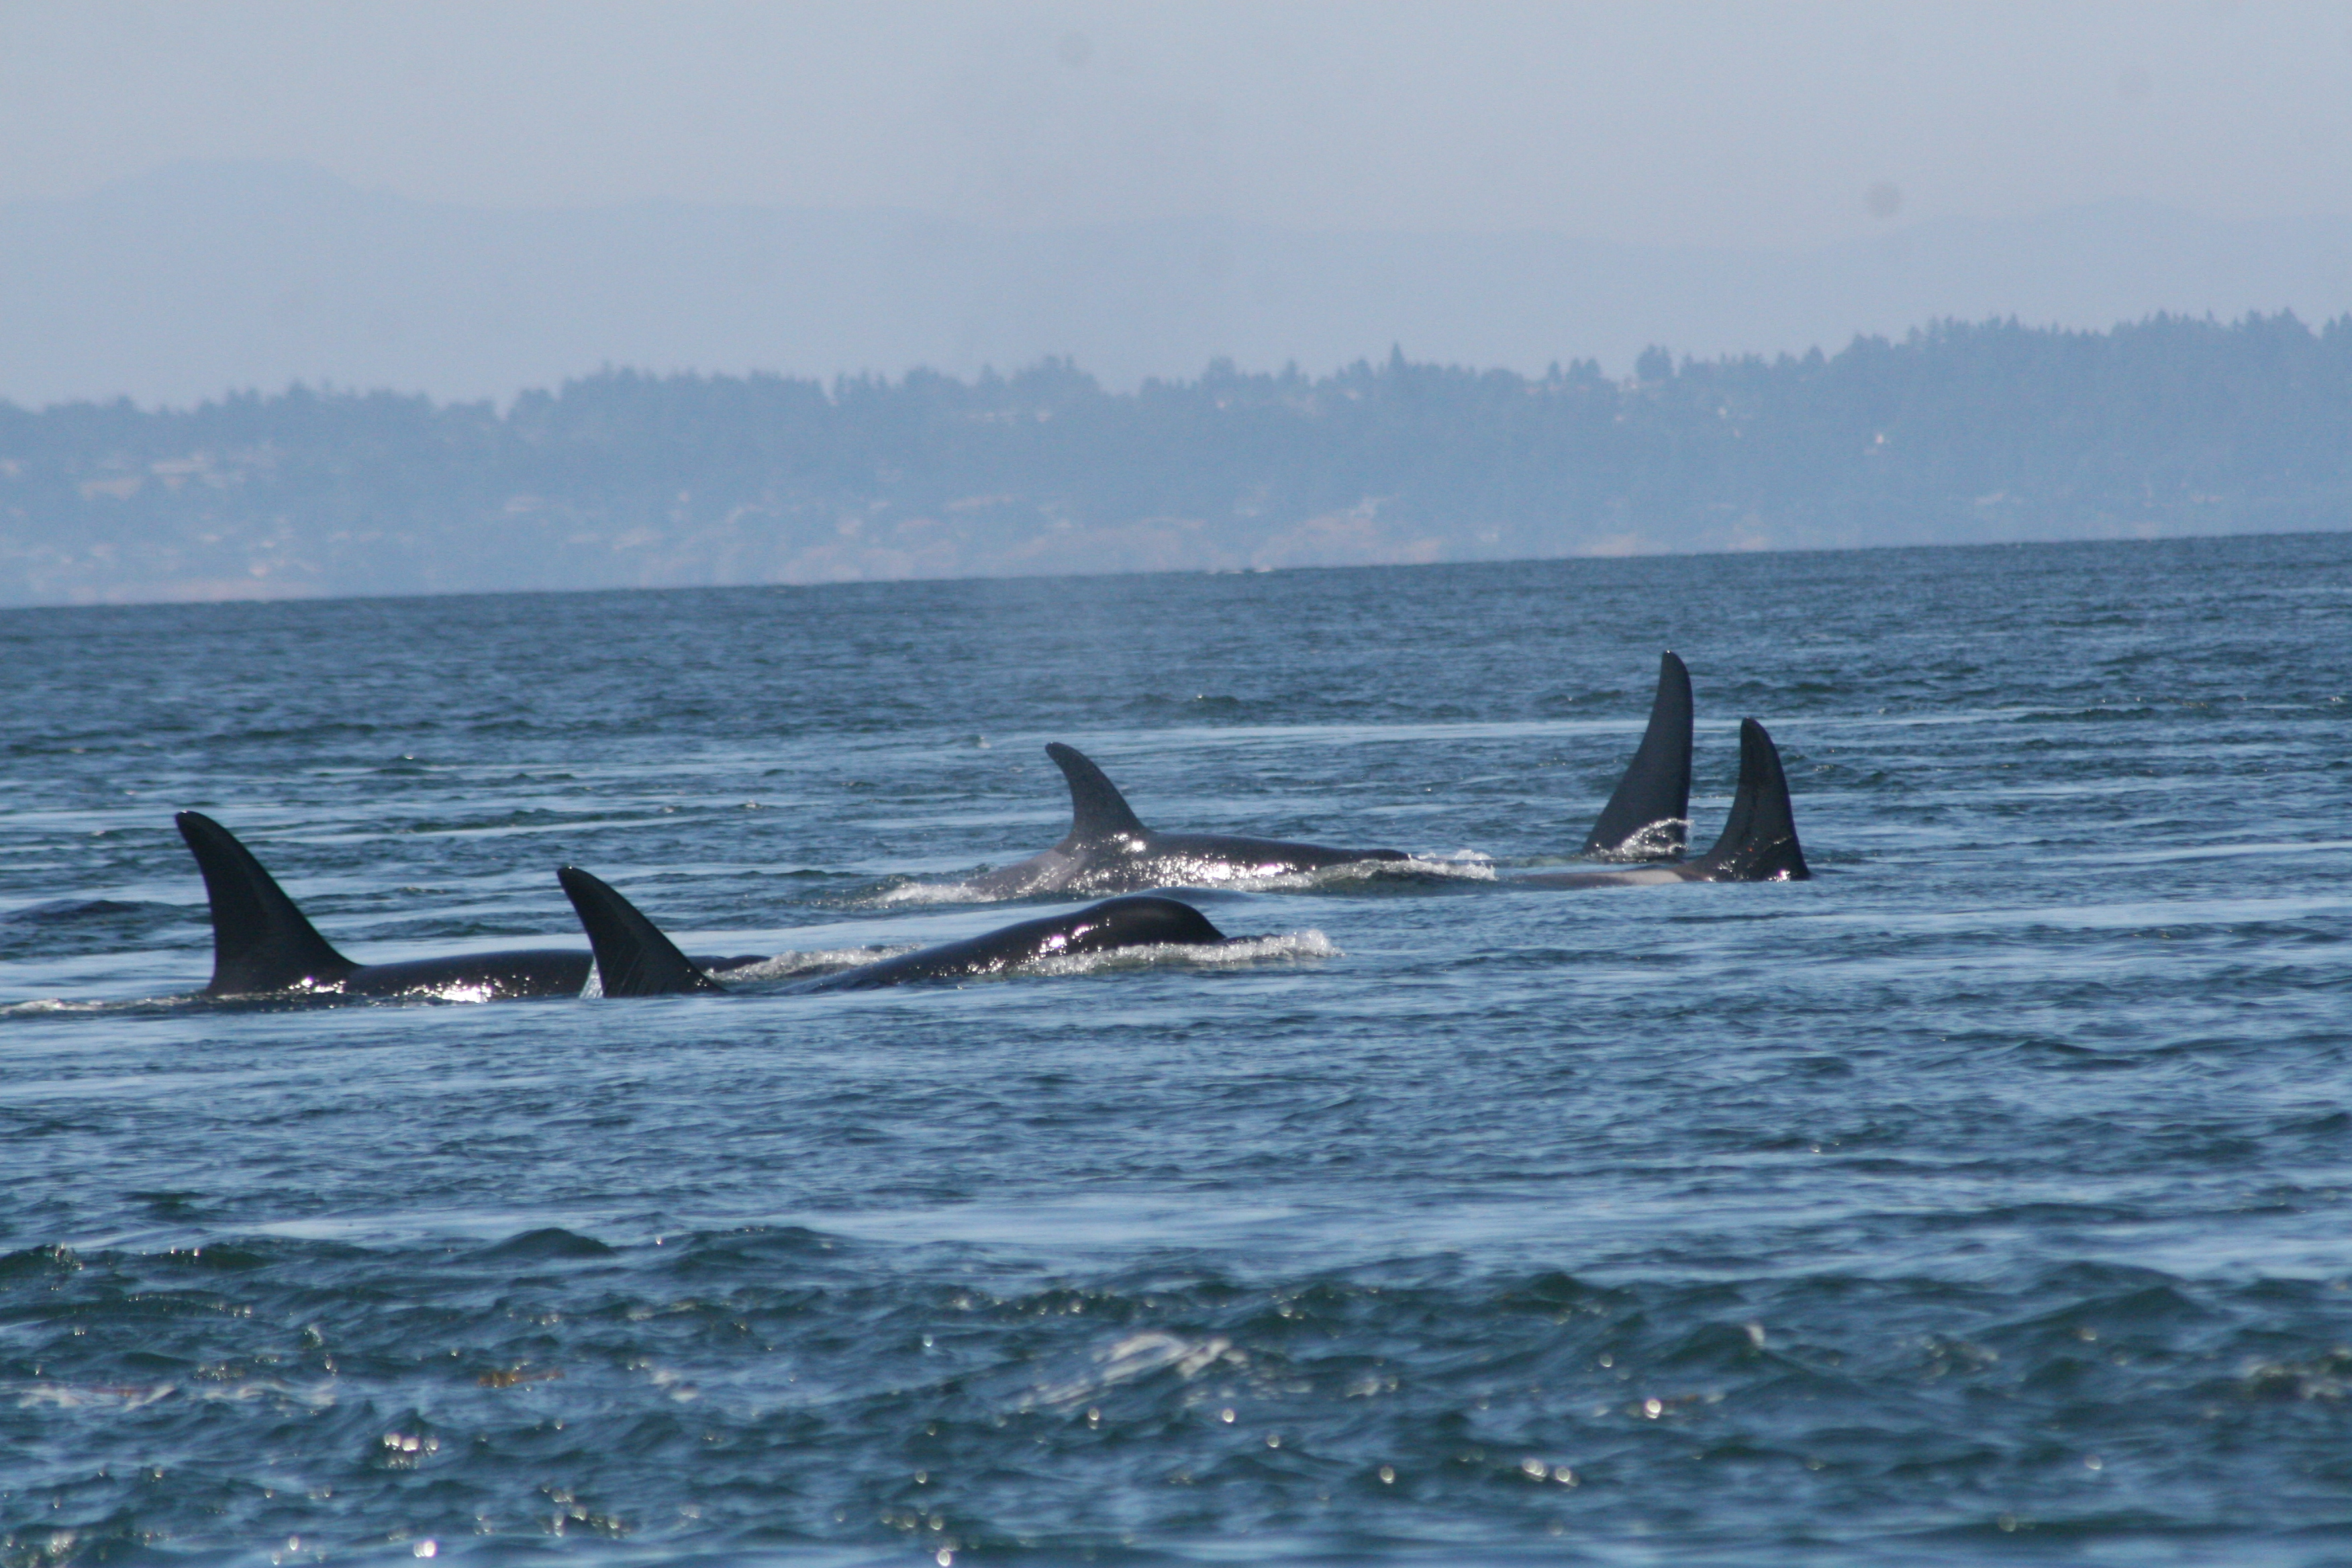 killer whales swimming parallel to each other in the water